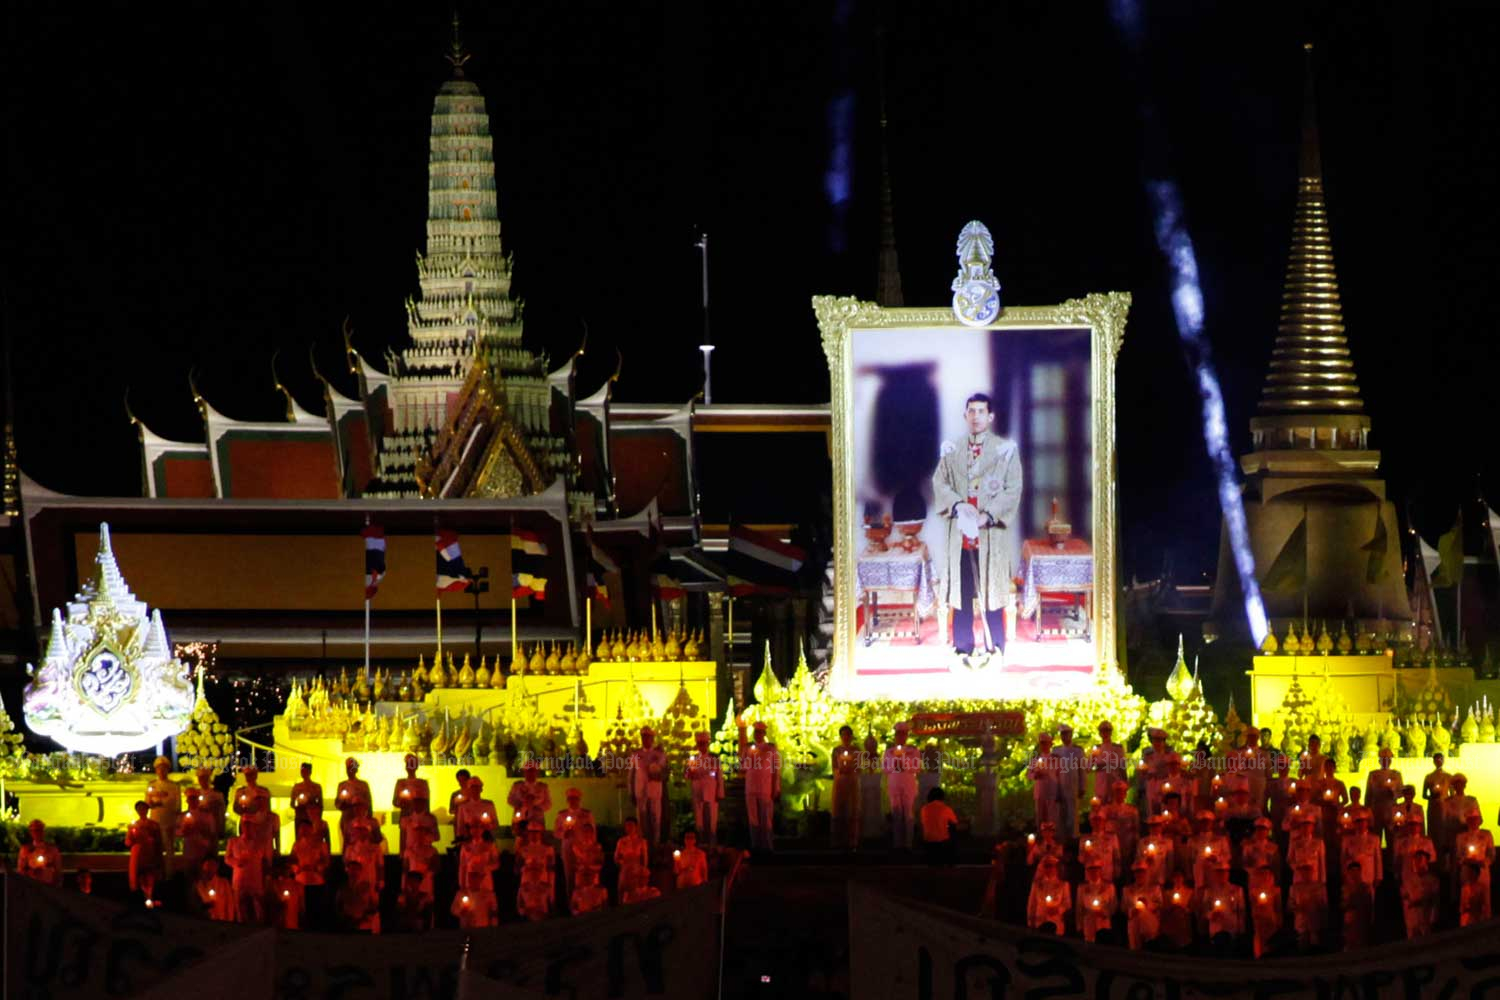 Well-wishers hold candles to celebrate His Majesty the King's 67th birthday at Sanam Luang on Sunday. (Photo by Wichan Charoenkiatpakul)